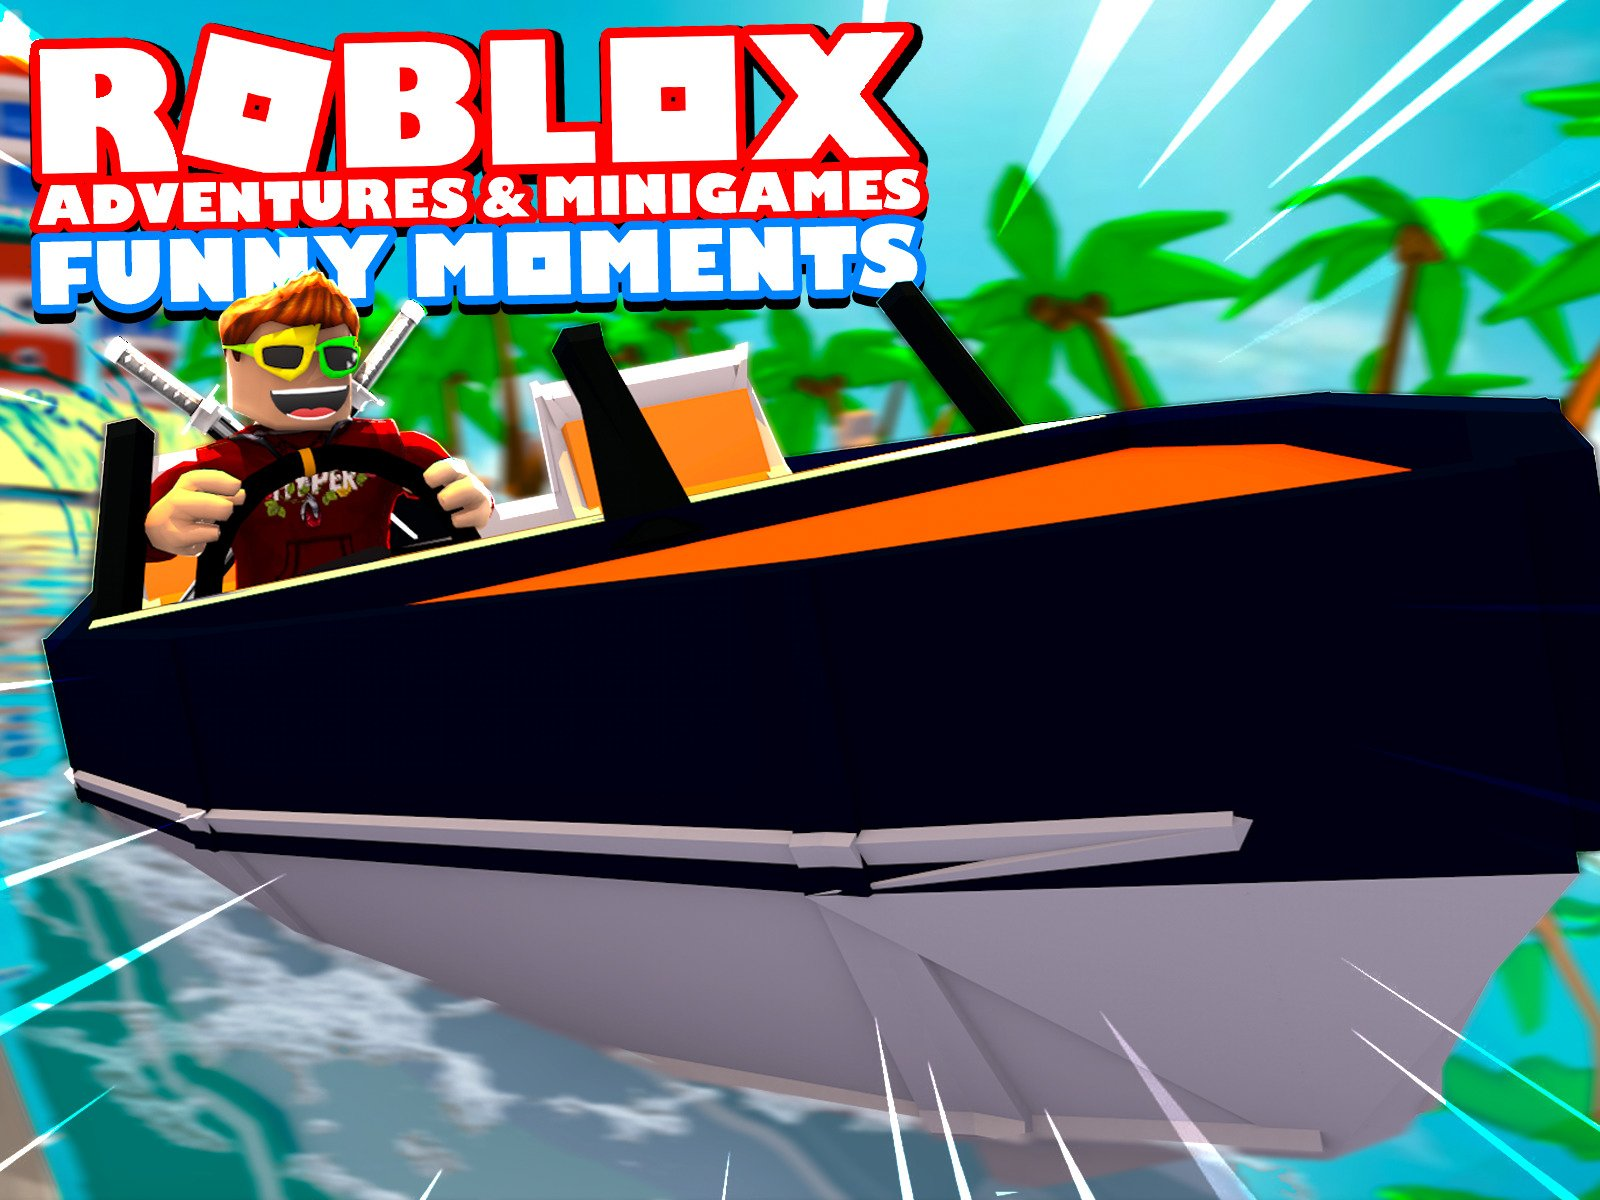 Roblox Adventures & Minigames (Funny Moments) on Amazon Prime Video UK